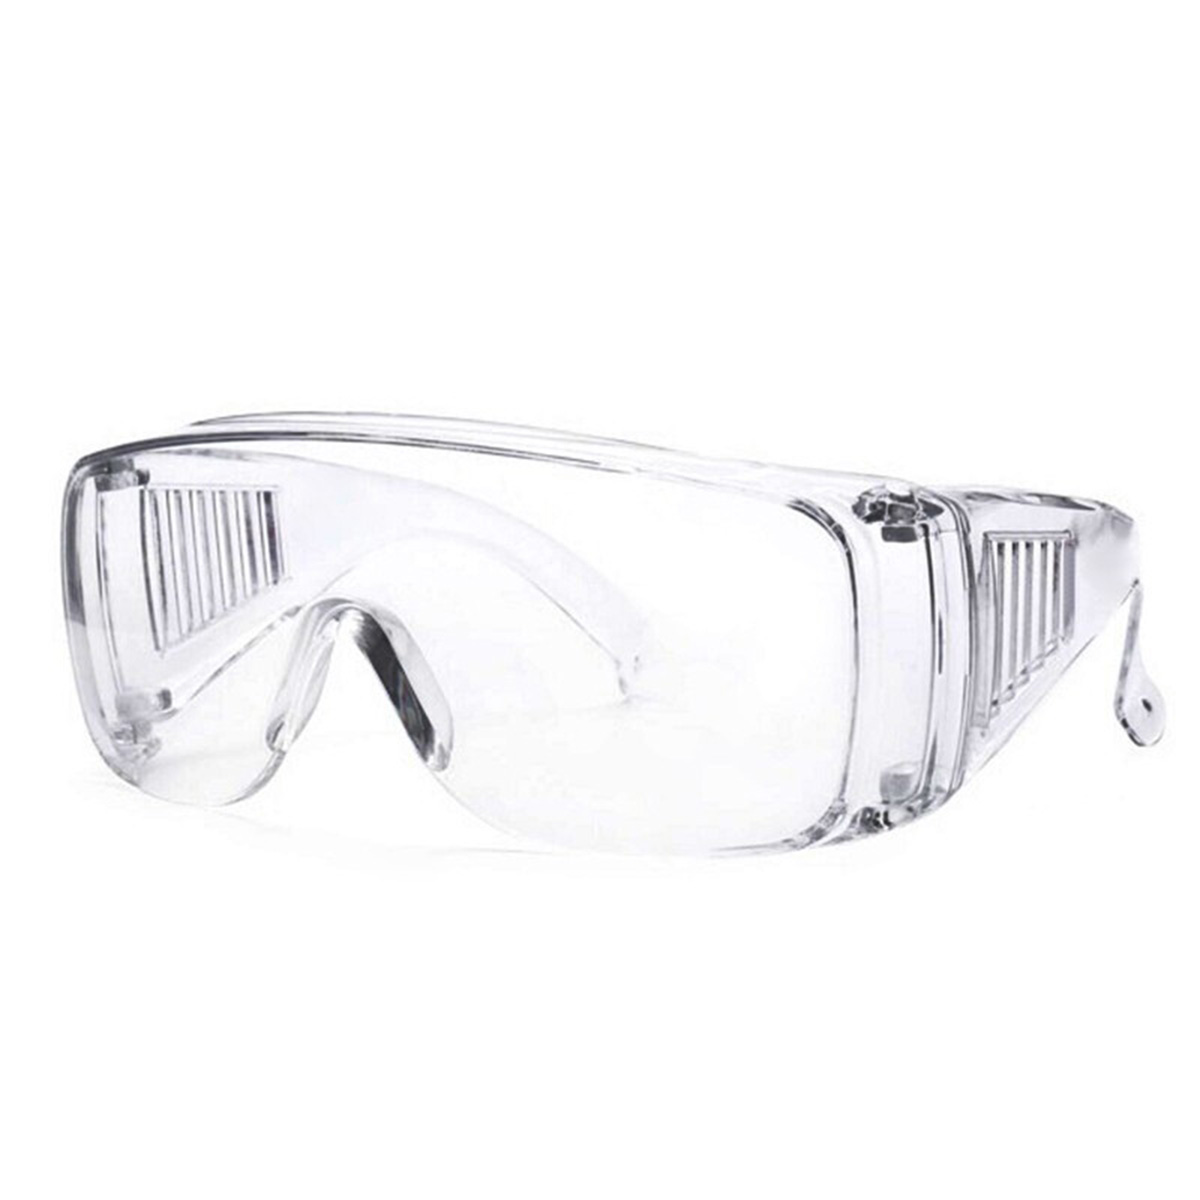 Clear Safety Goggles Workplace Eye Protection Wind Dust Anti-fog  Use Glasses Labour Working Protective Glasses